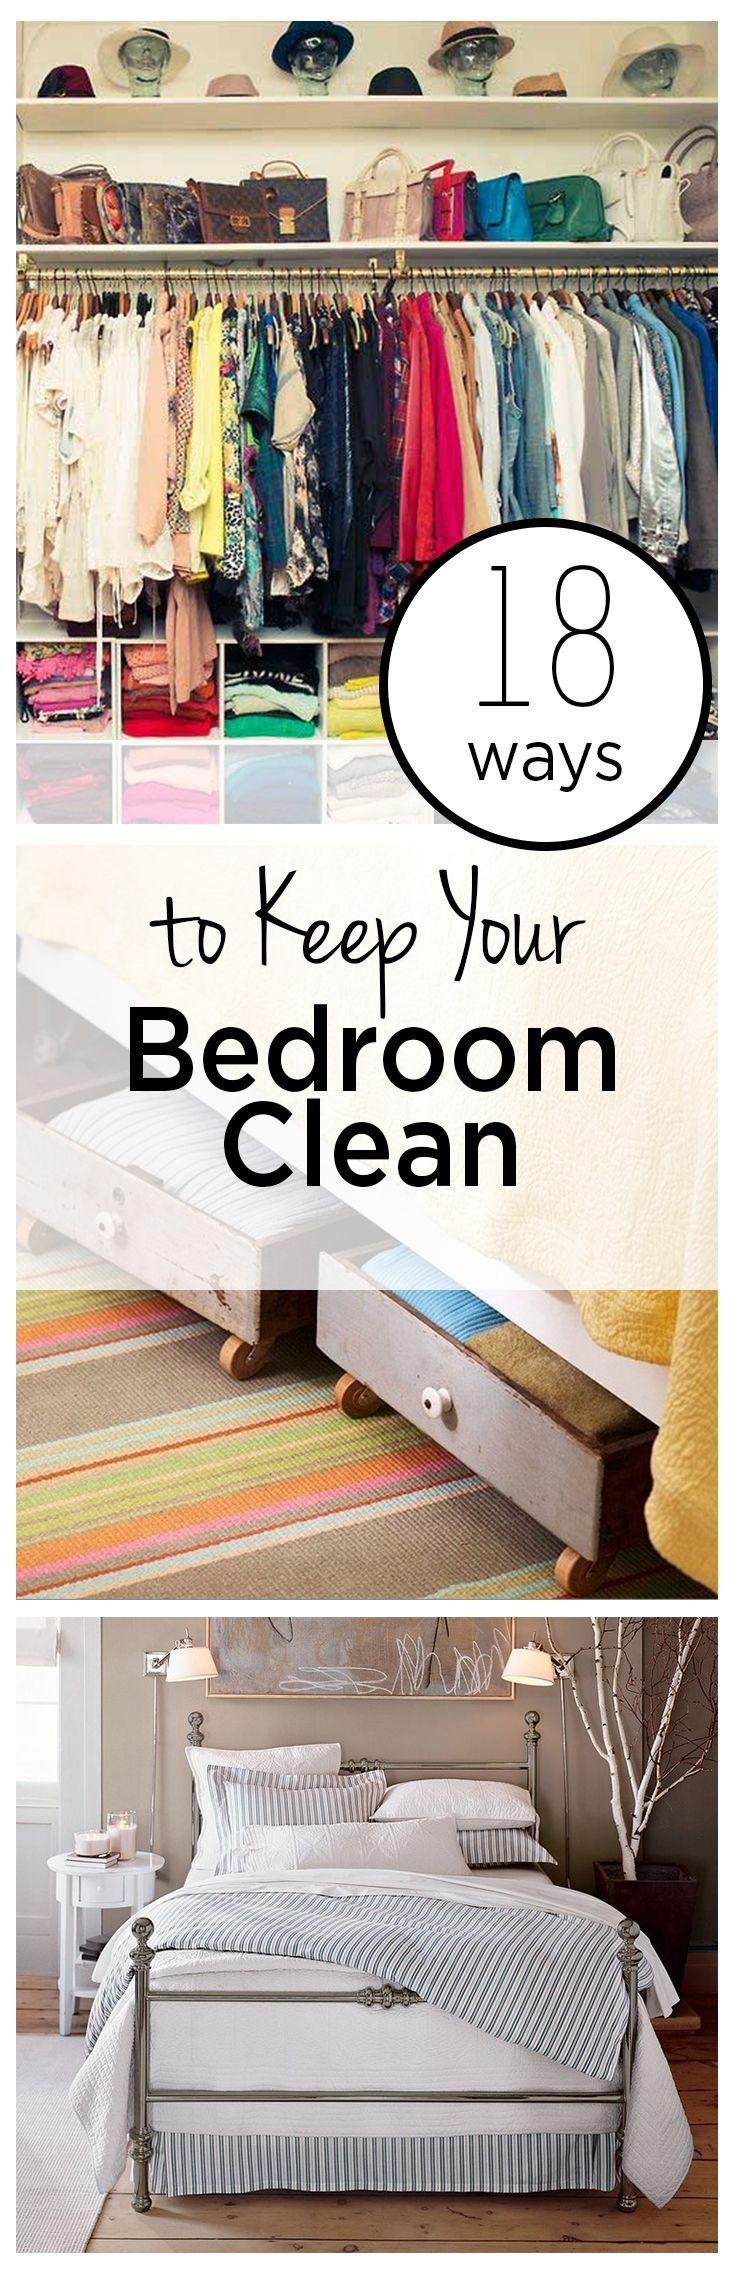 Ways to Keep Your Bedroom Clean clutter, clutter free living, cleaning, cleaning hacks, popular pin, cleaning tips, cleaning utter, clutter free living, cleaning, cleaning hacks, popular pin, cleaning tips, cleaning hacks.